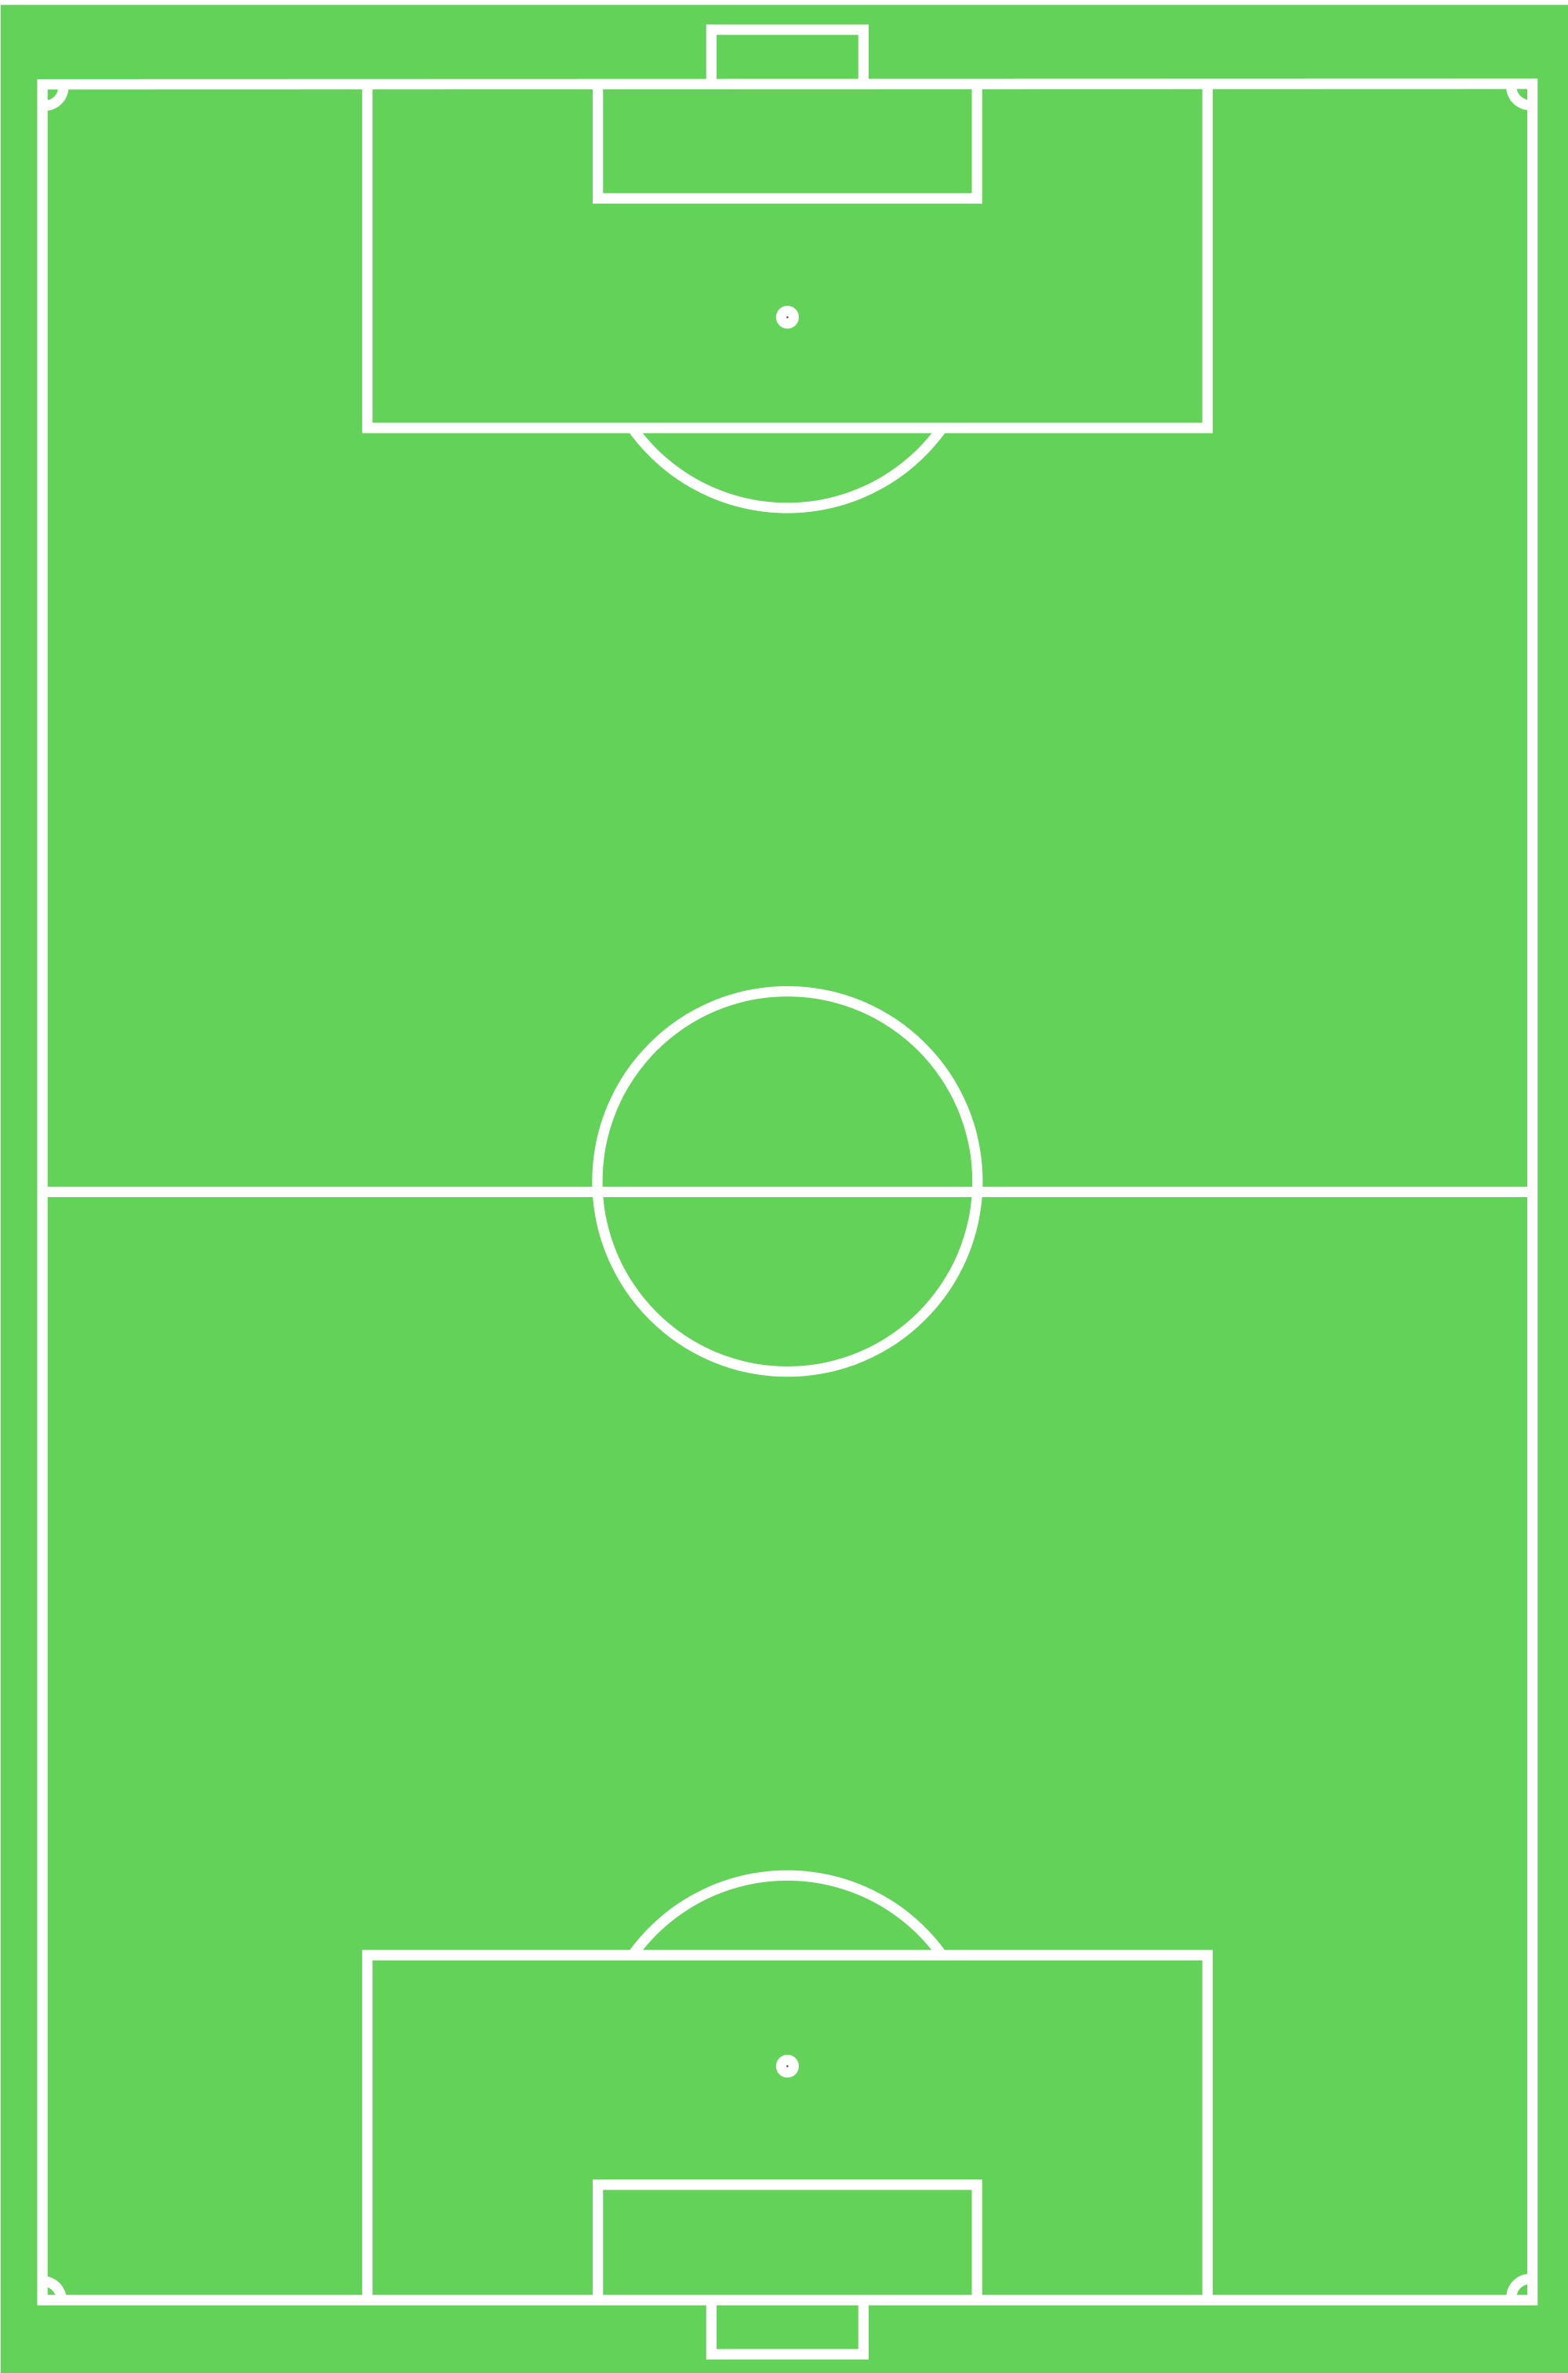 Field clipart sport field. Image soccer transparant png